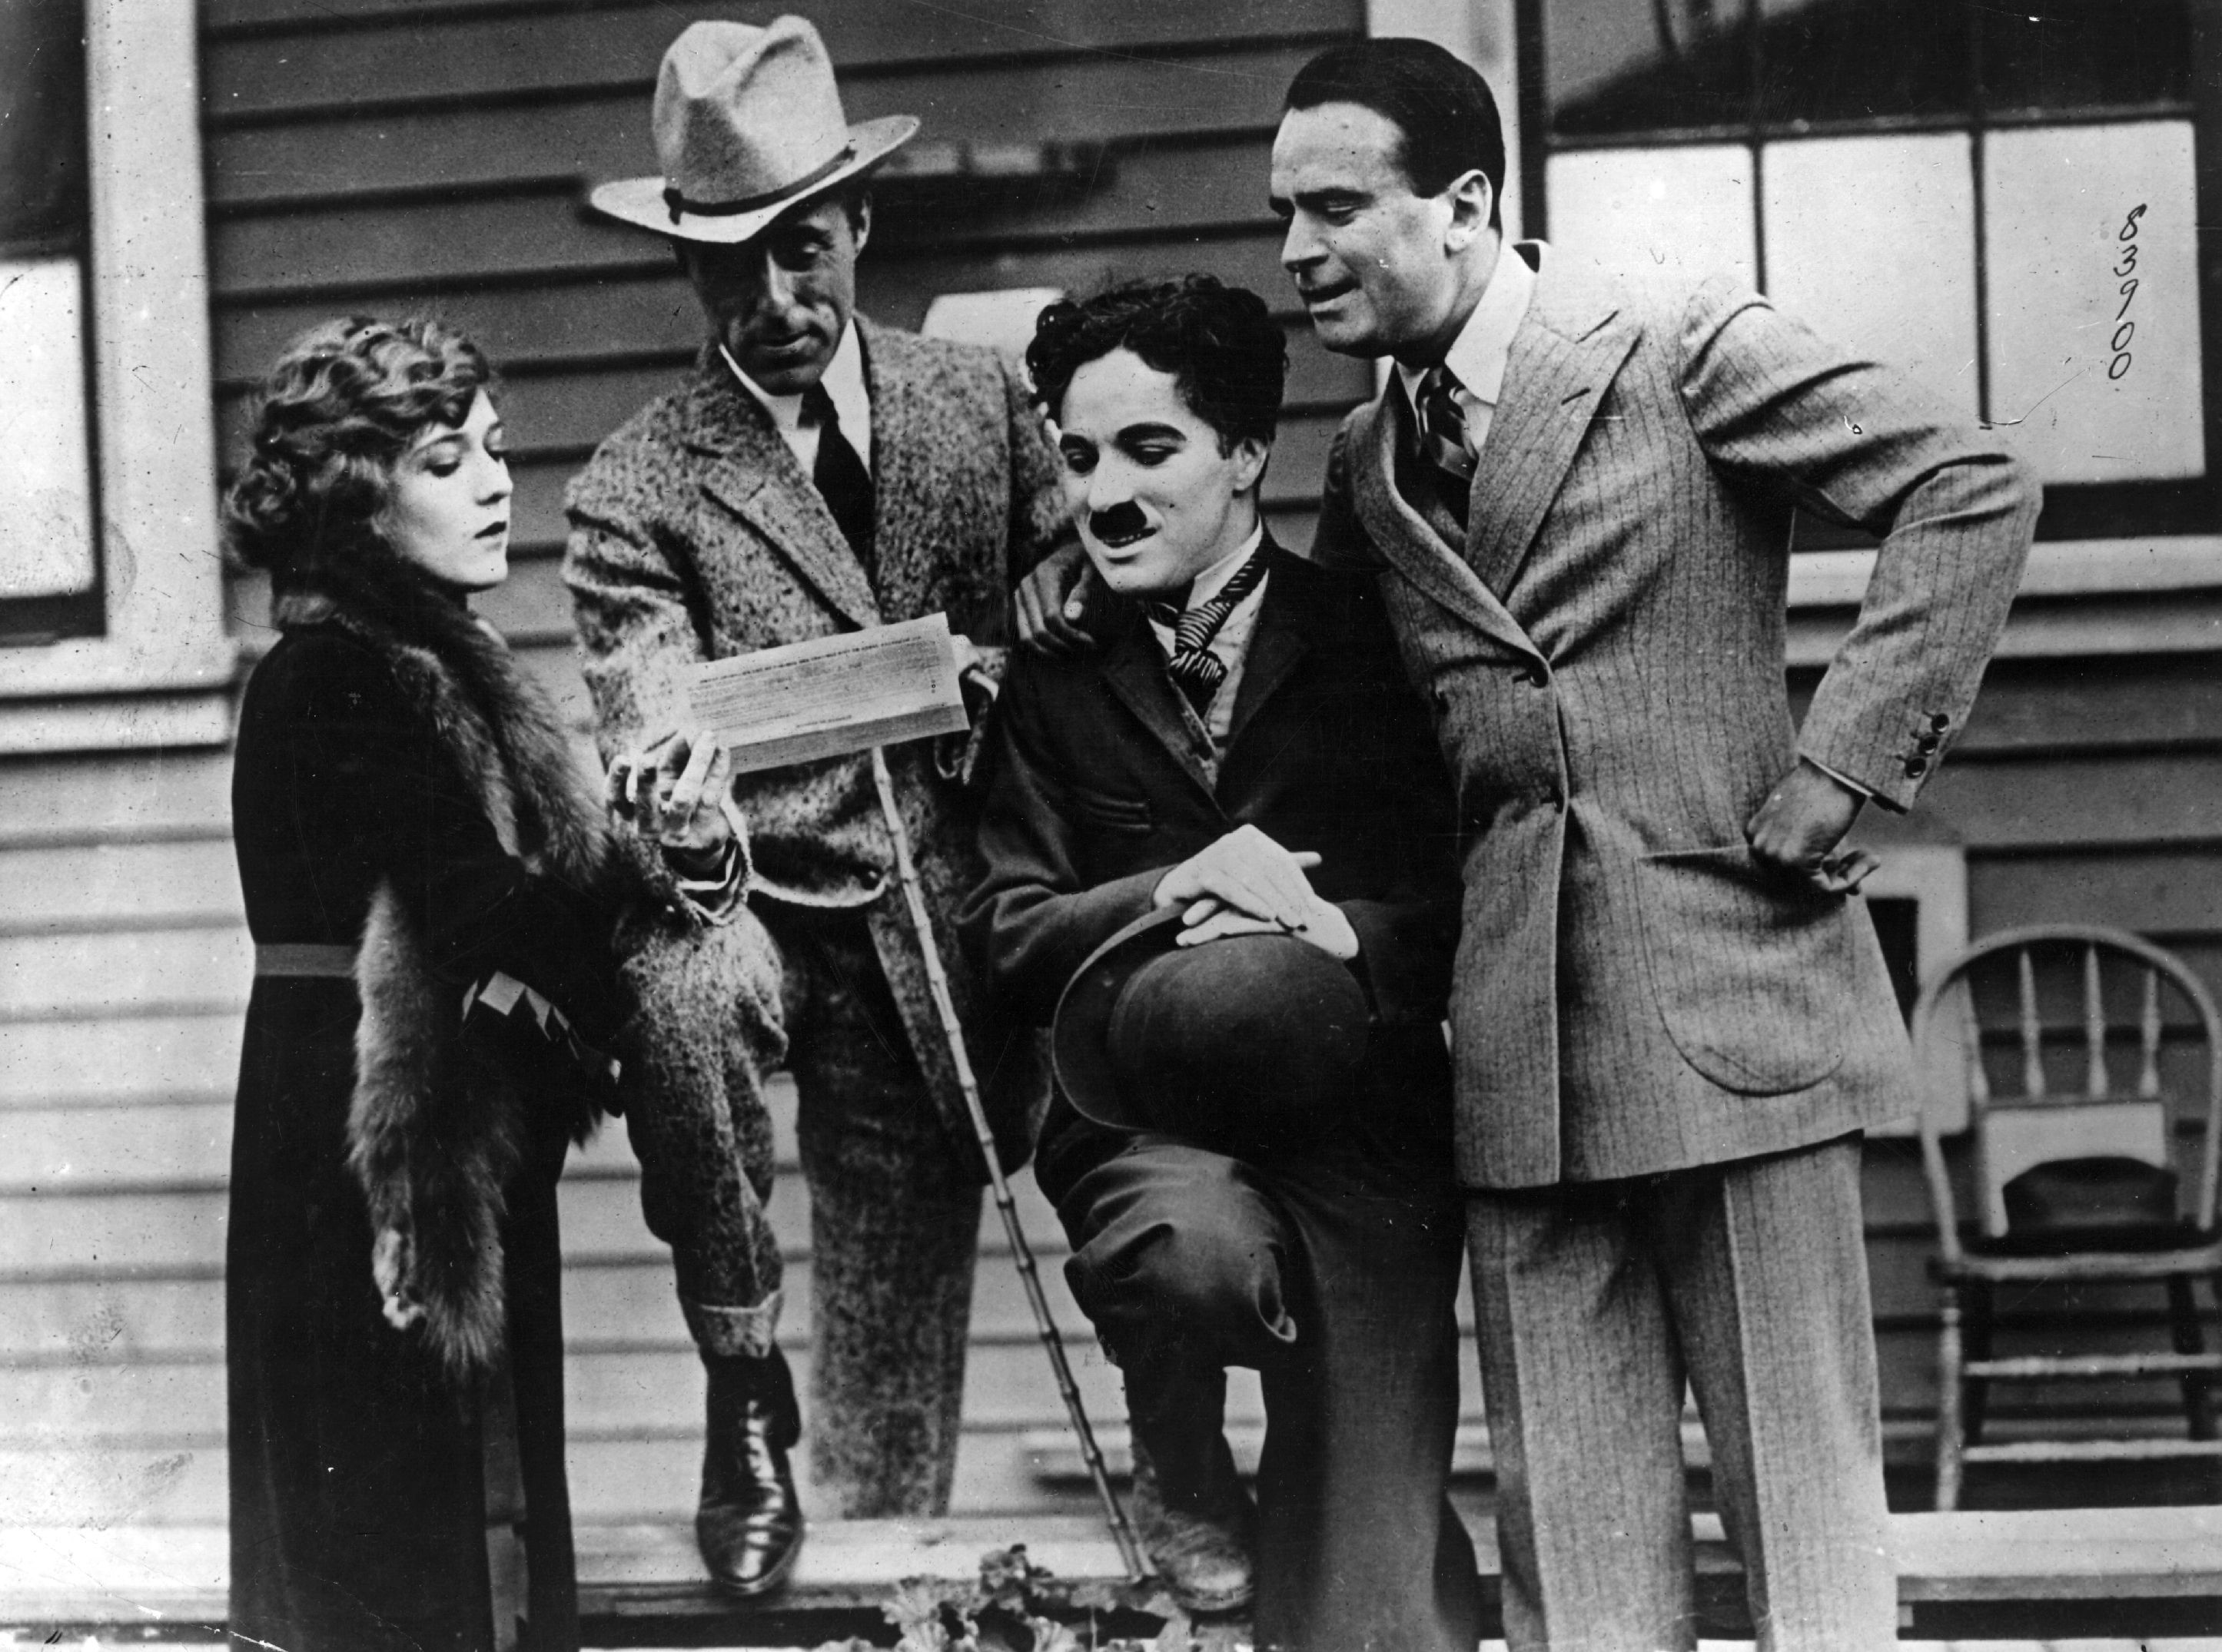 Http Blog Nuraypictures Com Wp Content Uploads 2013 12 United Artists Jpg Charlie Chaplin United Artists Chaplin